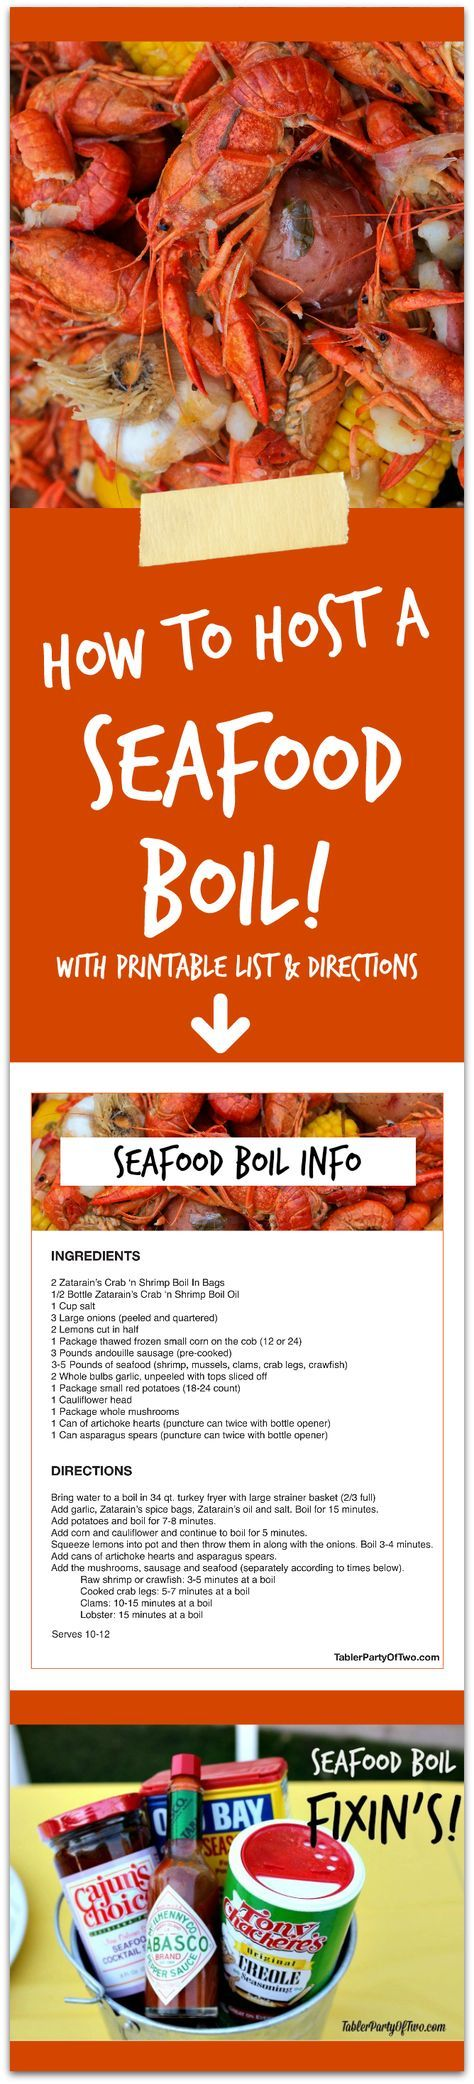 How to Host a Seafood Boil - everything you need to know! This will be the MOST FUN summer party you ever threw! Click to get your FREE printable list and directions. : tablerpartyoftwo #Summer